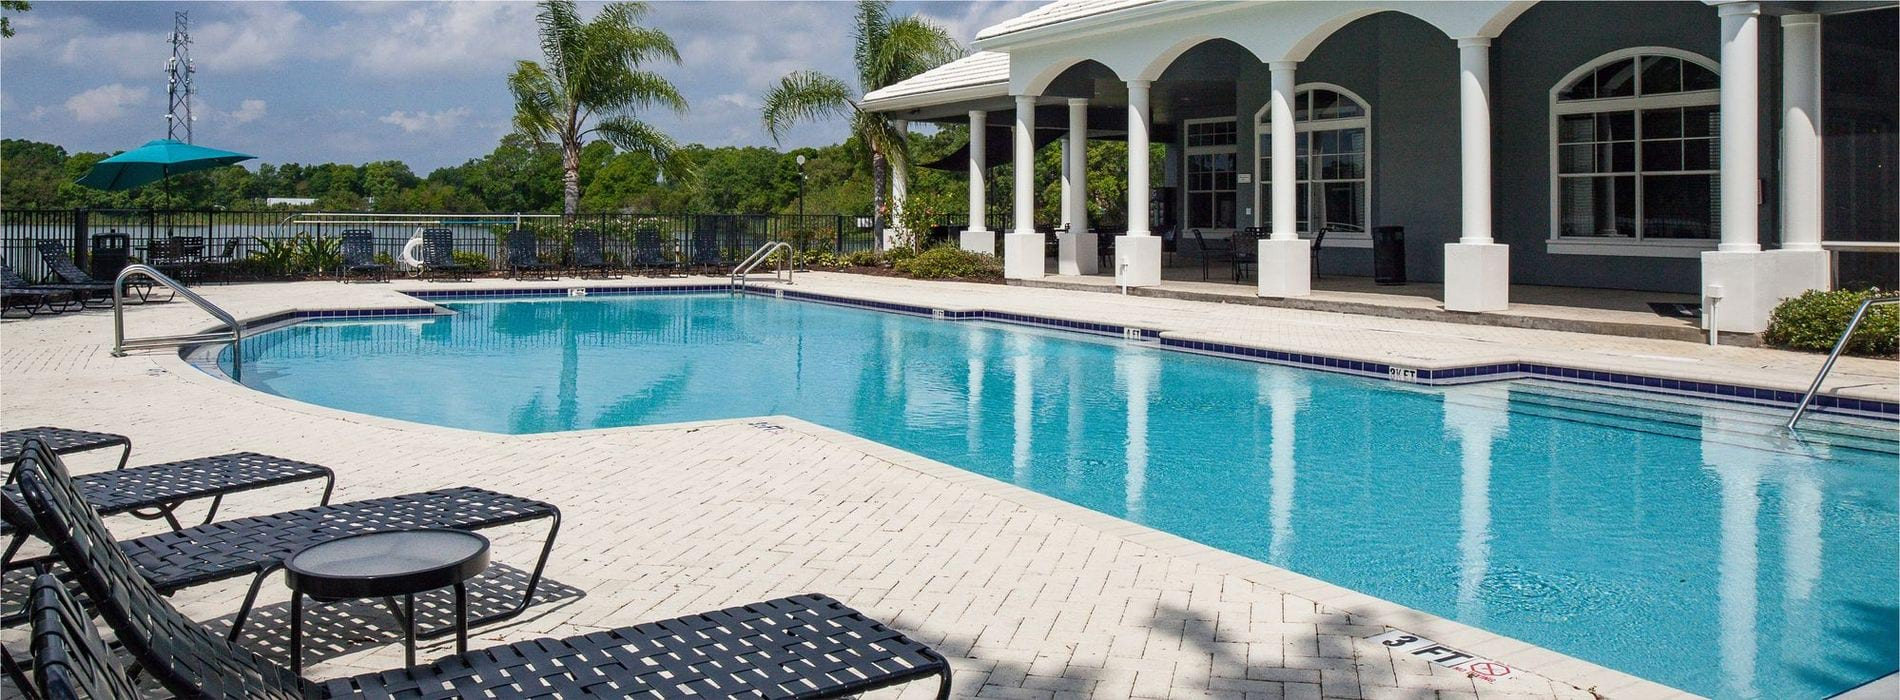 Apartments for Rent in Brandon, FL   The Retreat at Broadway Centre - Home